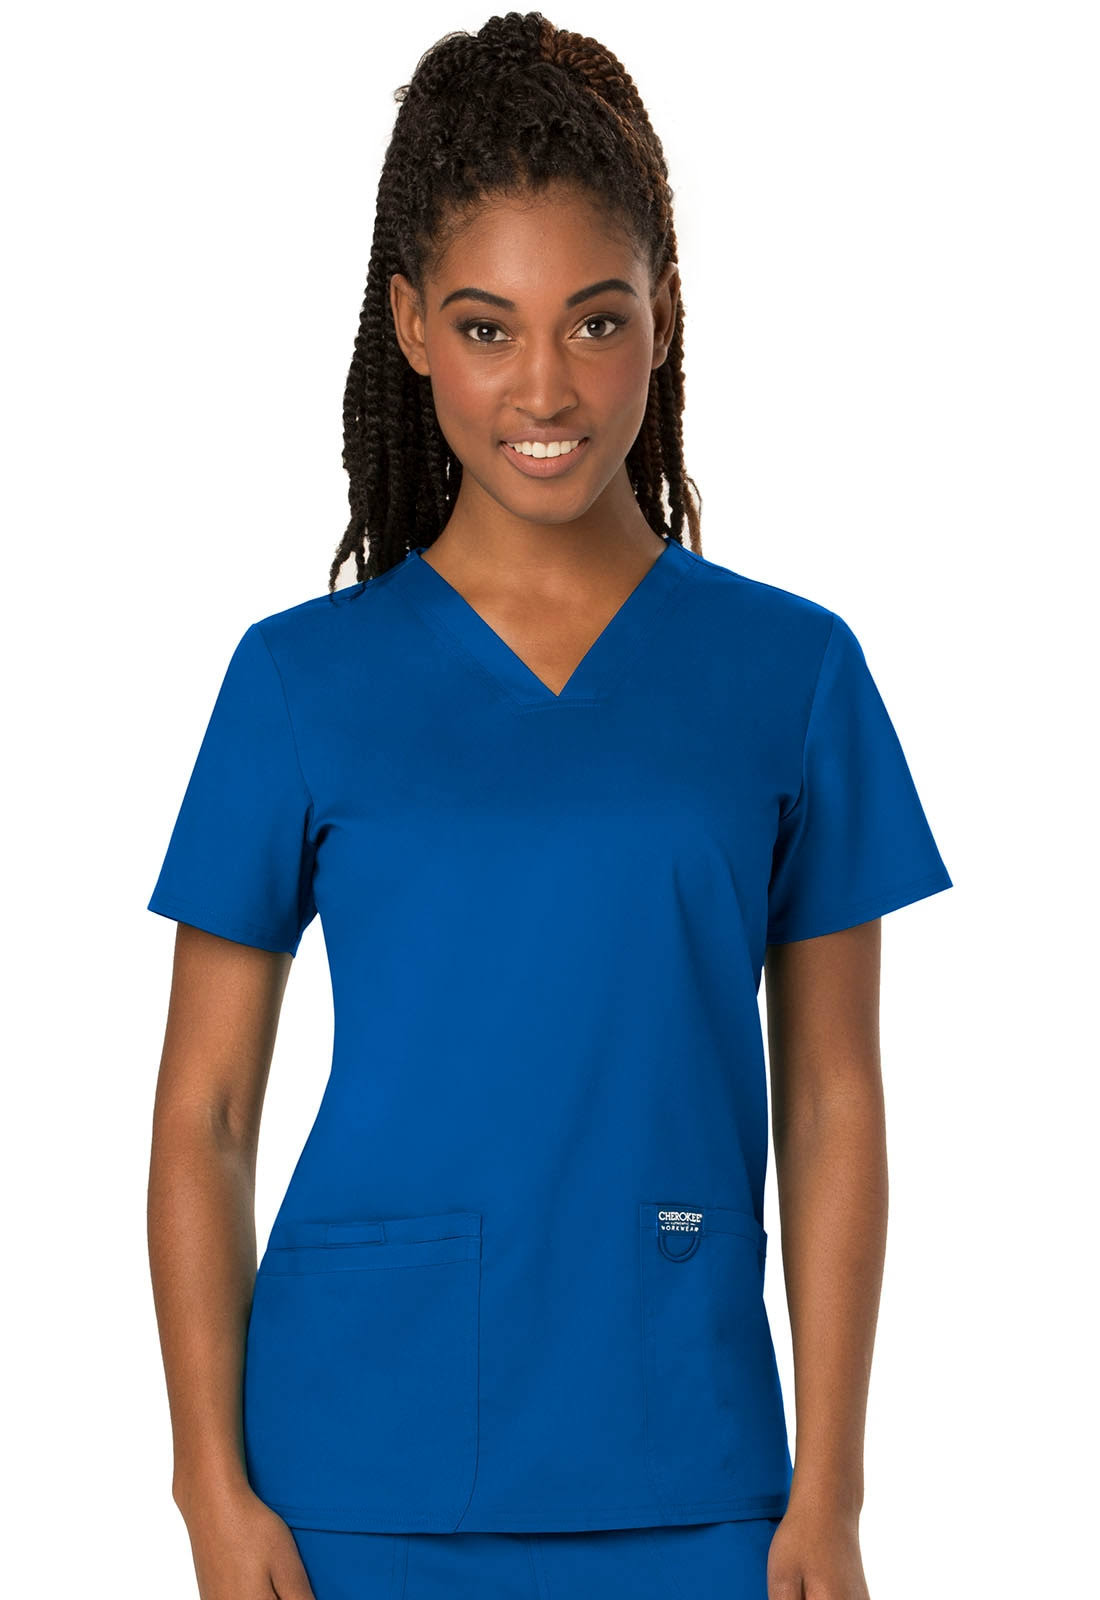 Cherokee Workwear Revolution V-Neck Scrub Top - M - Royal